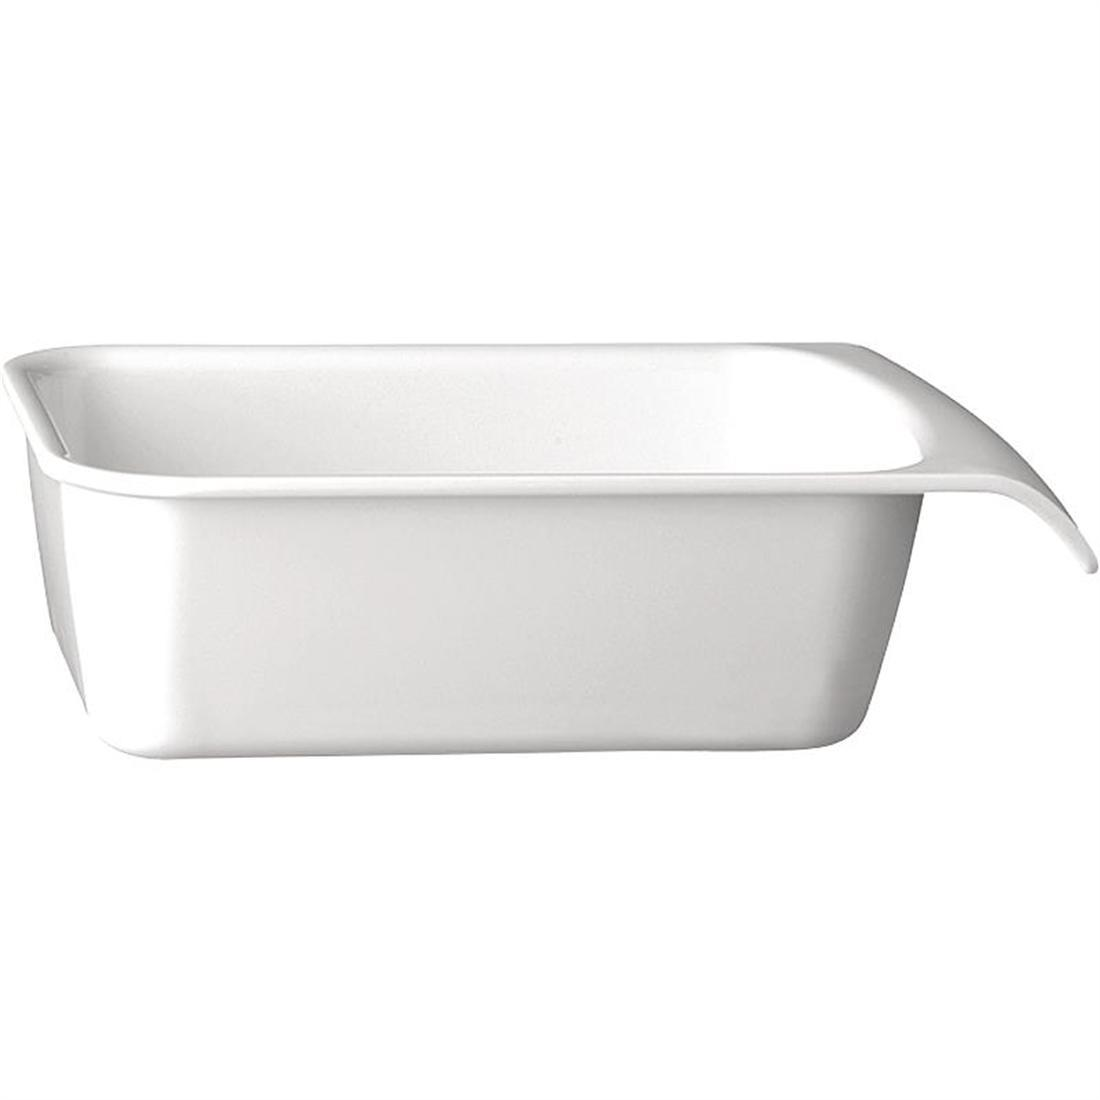 APS White 1/4GN Cascade Buffet Bowl - Each - GH402